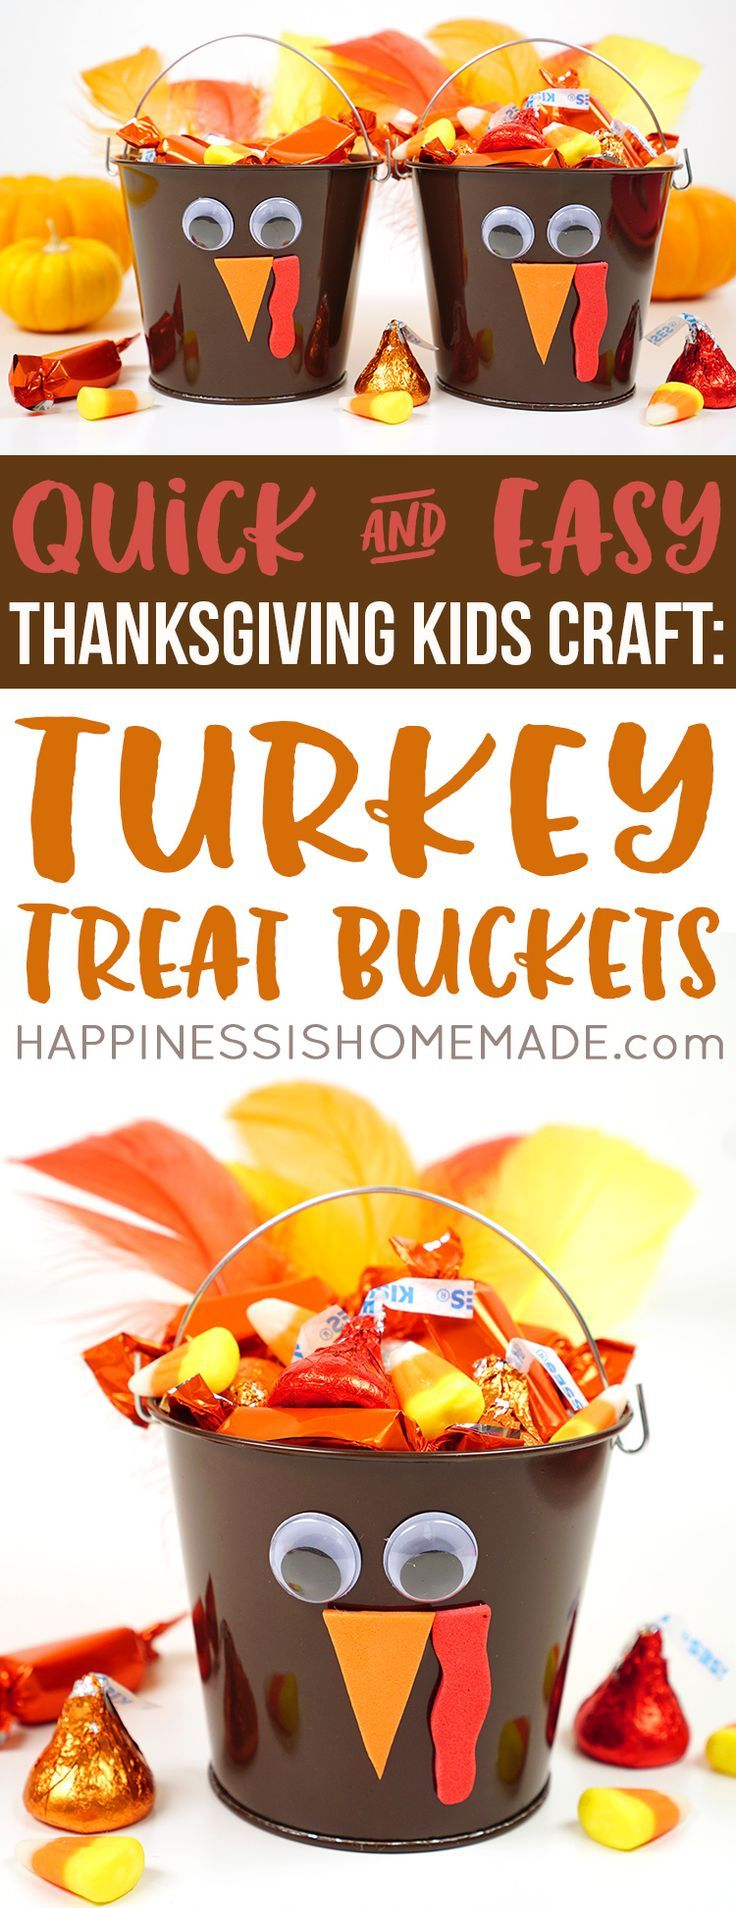 Looking for easy Thanksgiving crafts for kids? These Turkey Treat Buckets  are a simple and